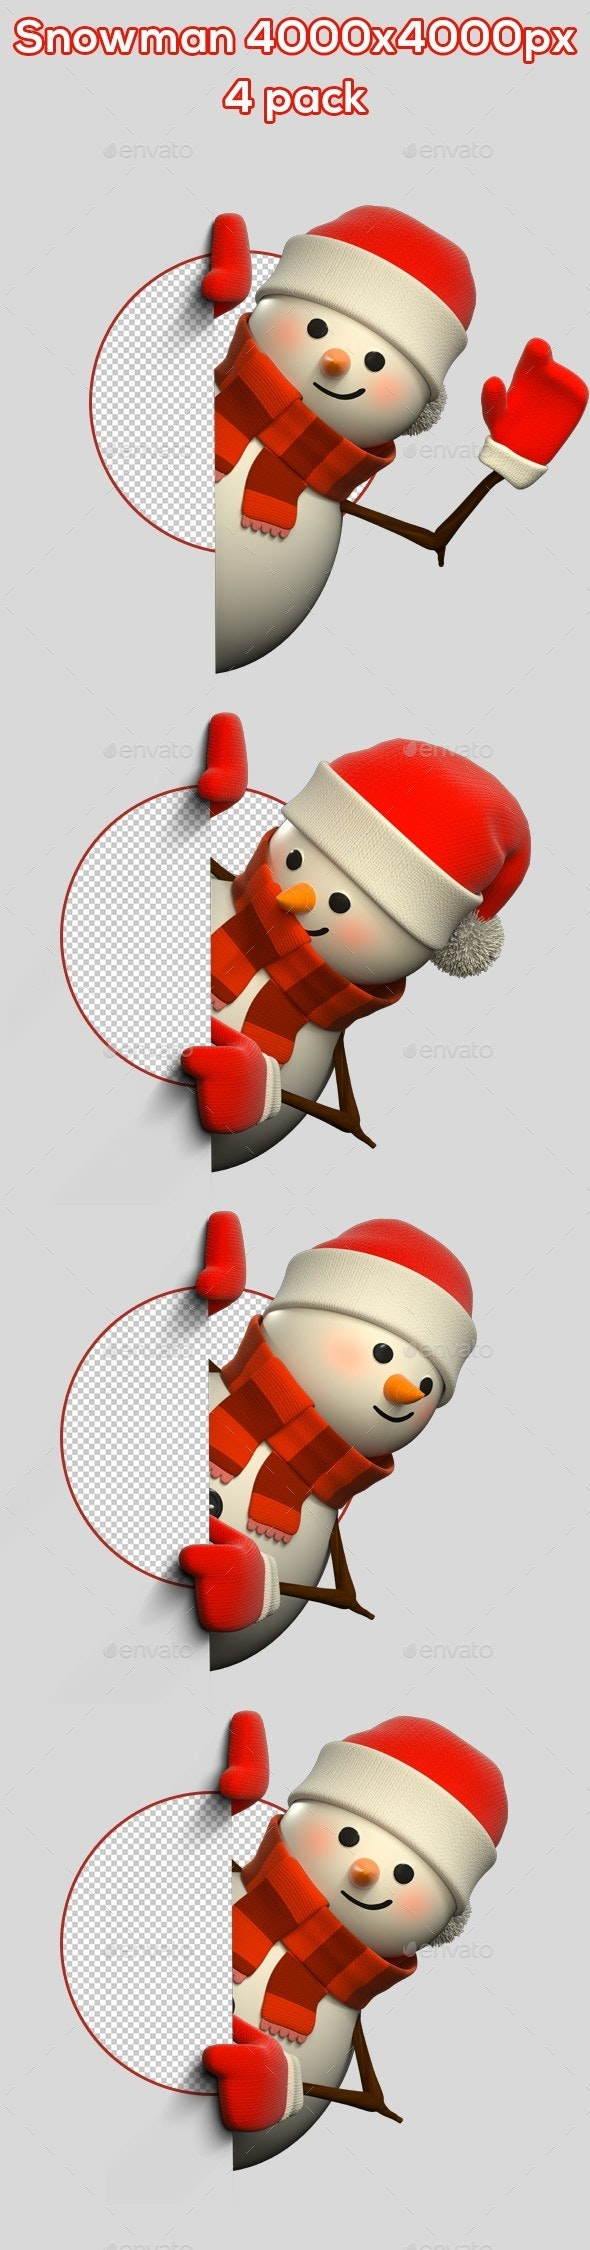 3D Snowman From Side - 4 Pack - Characters 3D Renders